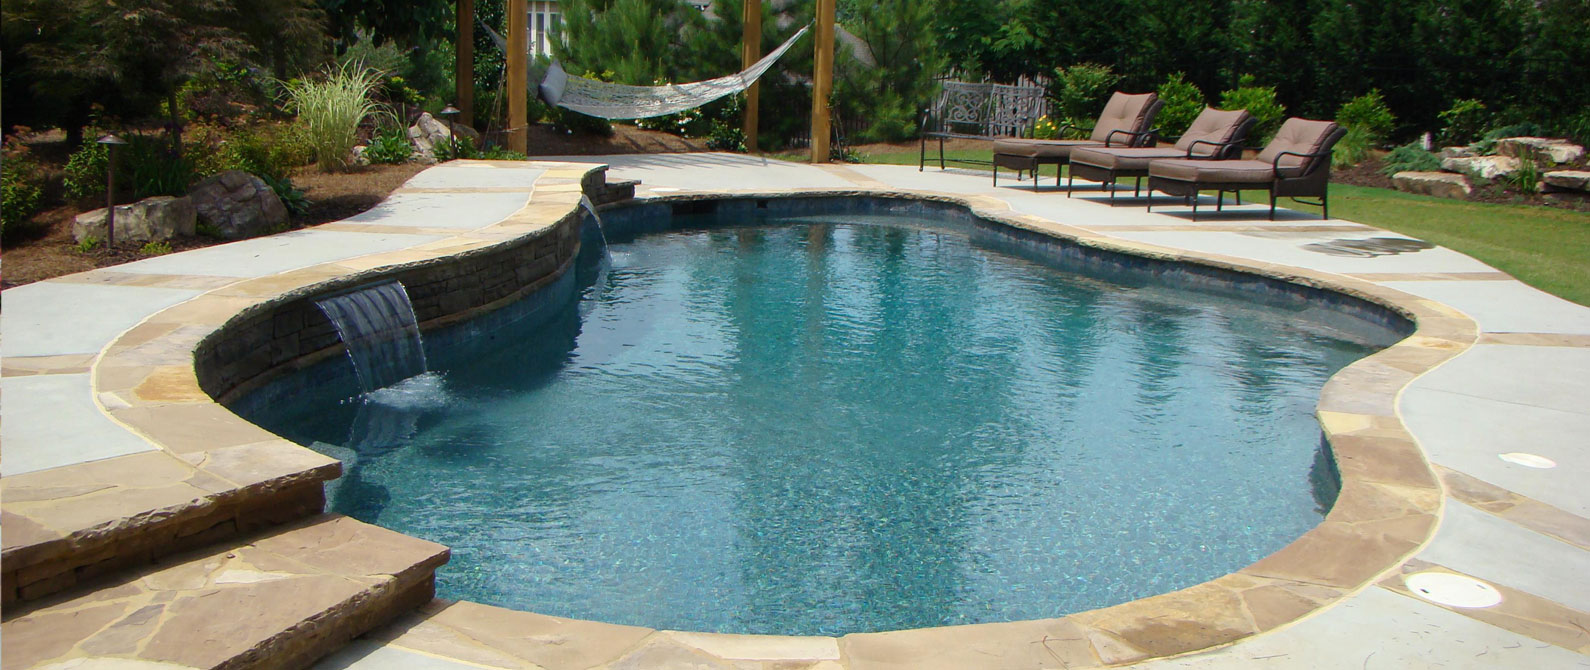 High quality pools and spas atlanta outdoor designs inc for Pool redesign